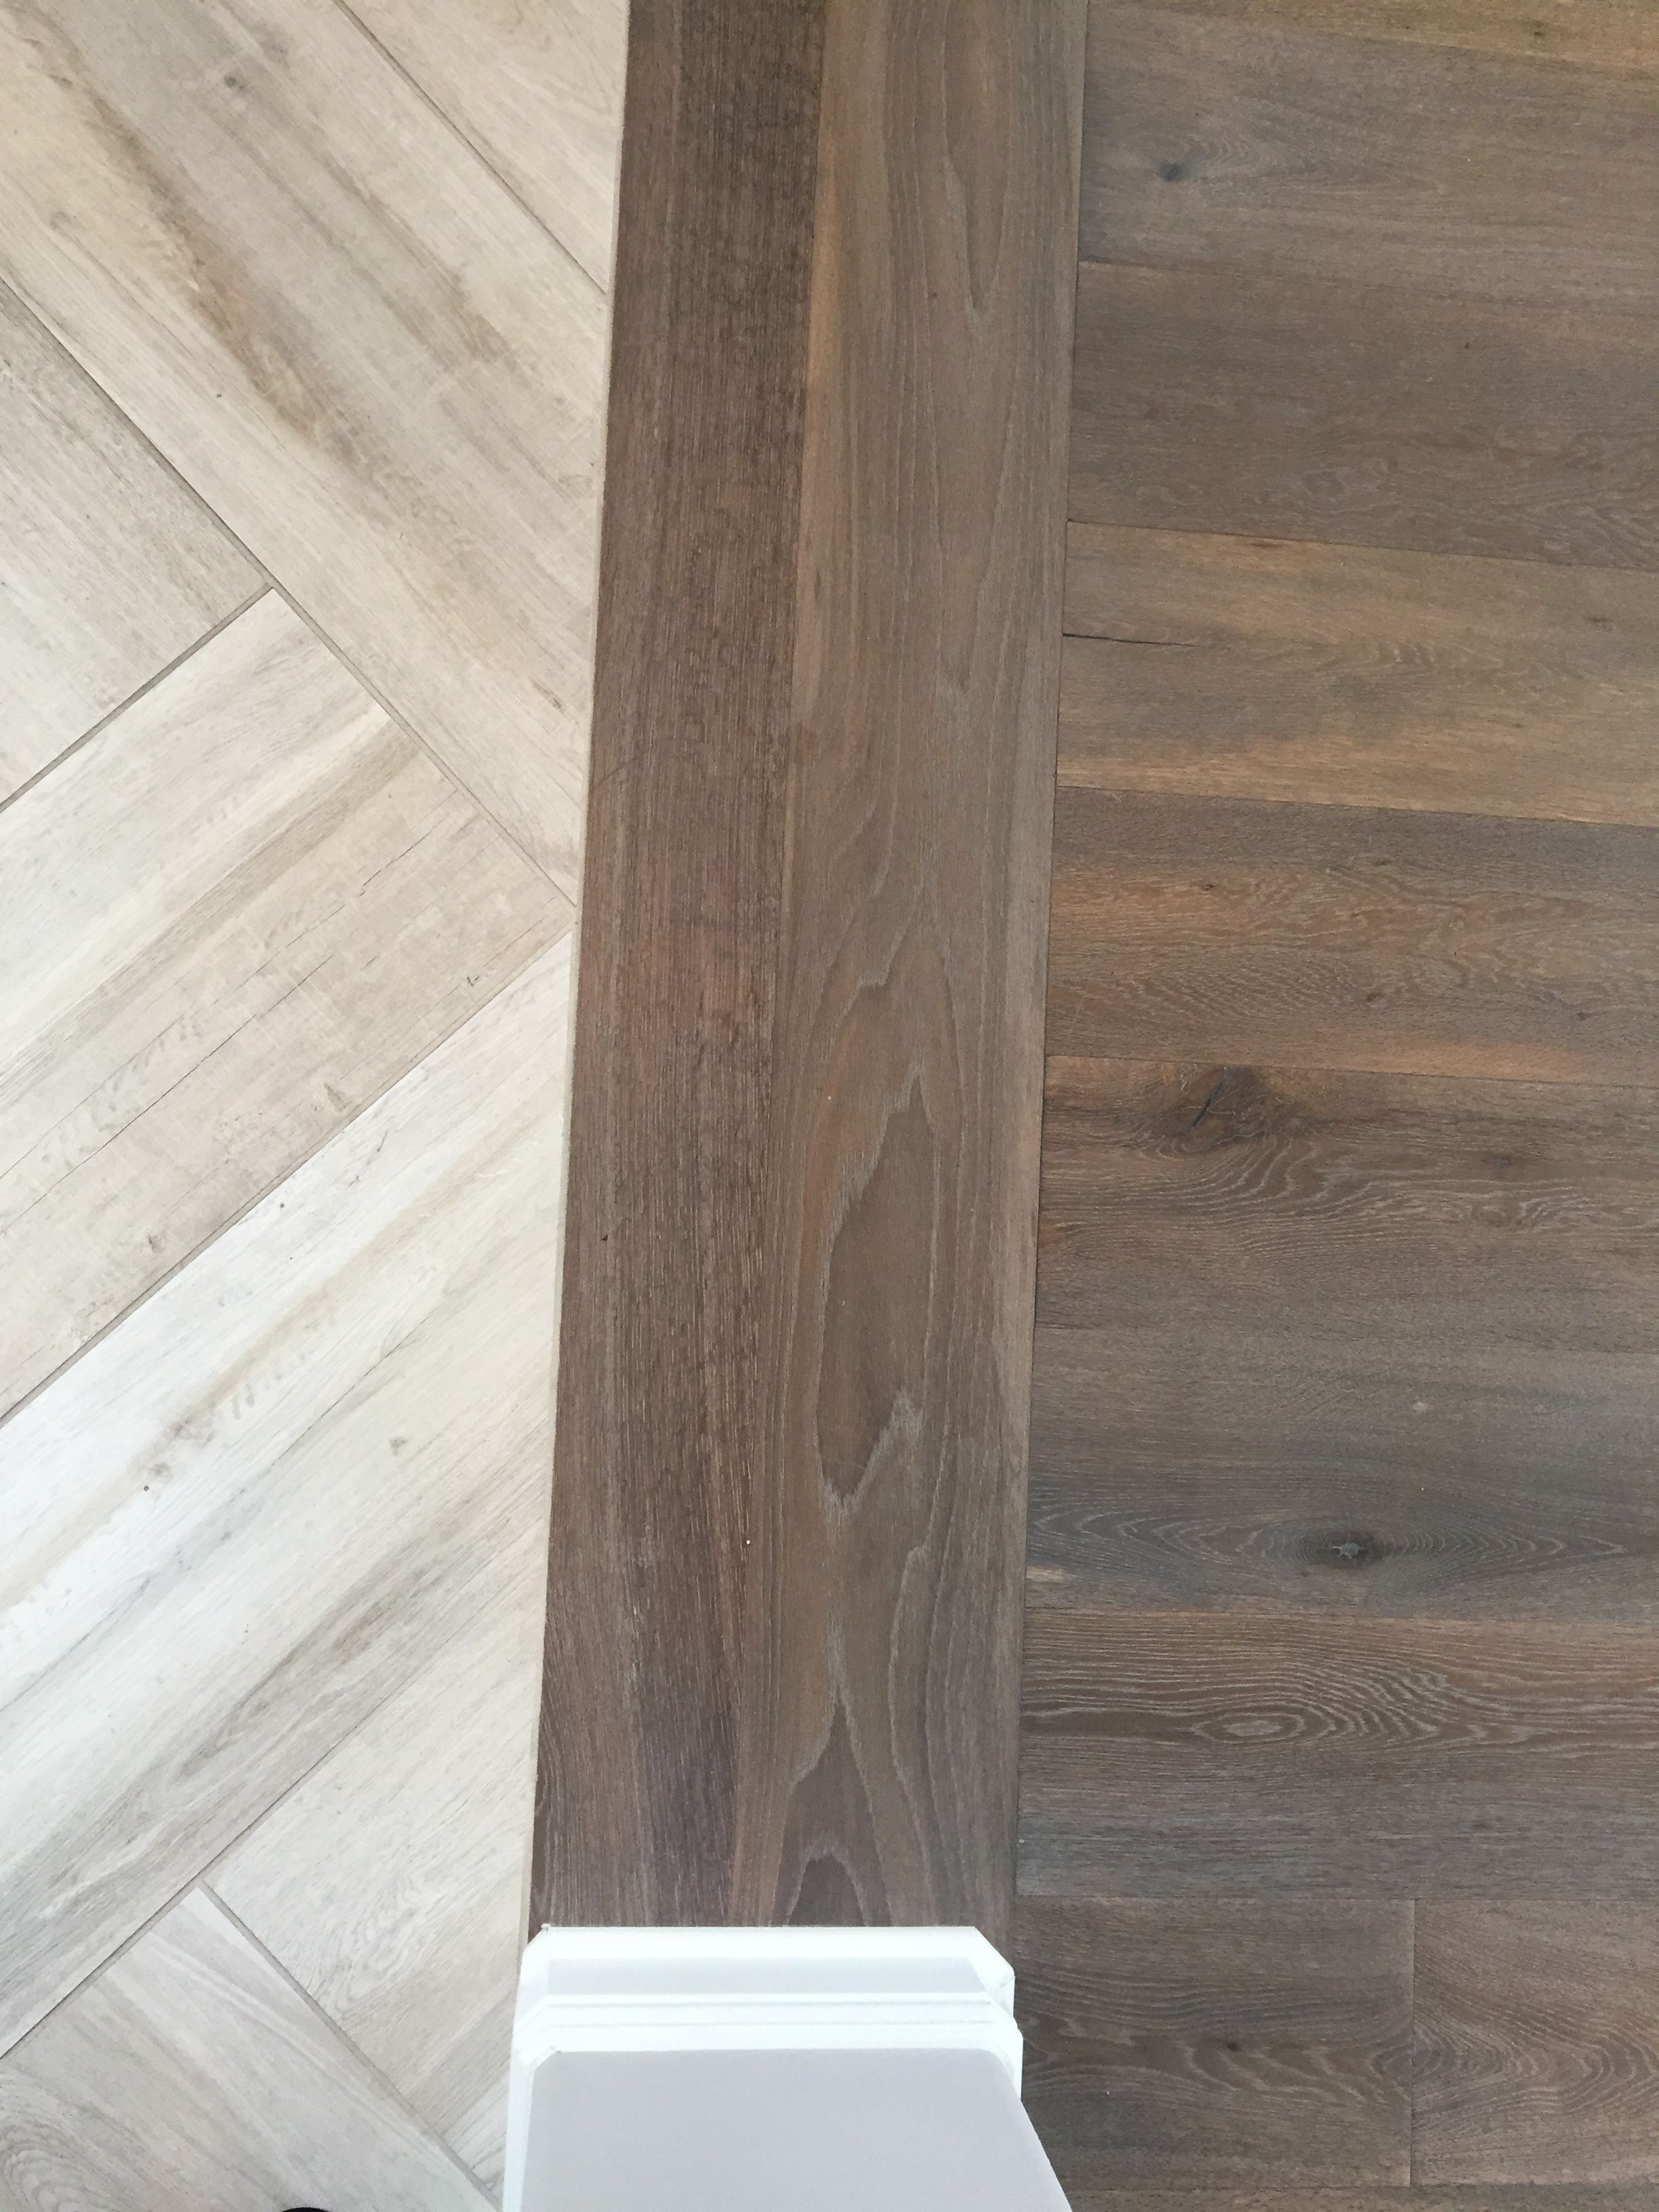 laying hardwood floor on concrete of floor transition laminate to herringbone tile pattern model within floor transition laminate to herringbone tile pattern herringbone tile pattern herringbone wood floor